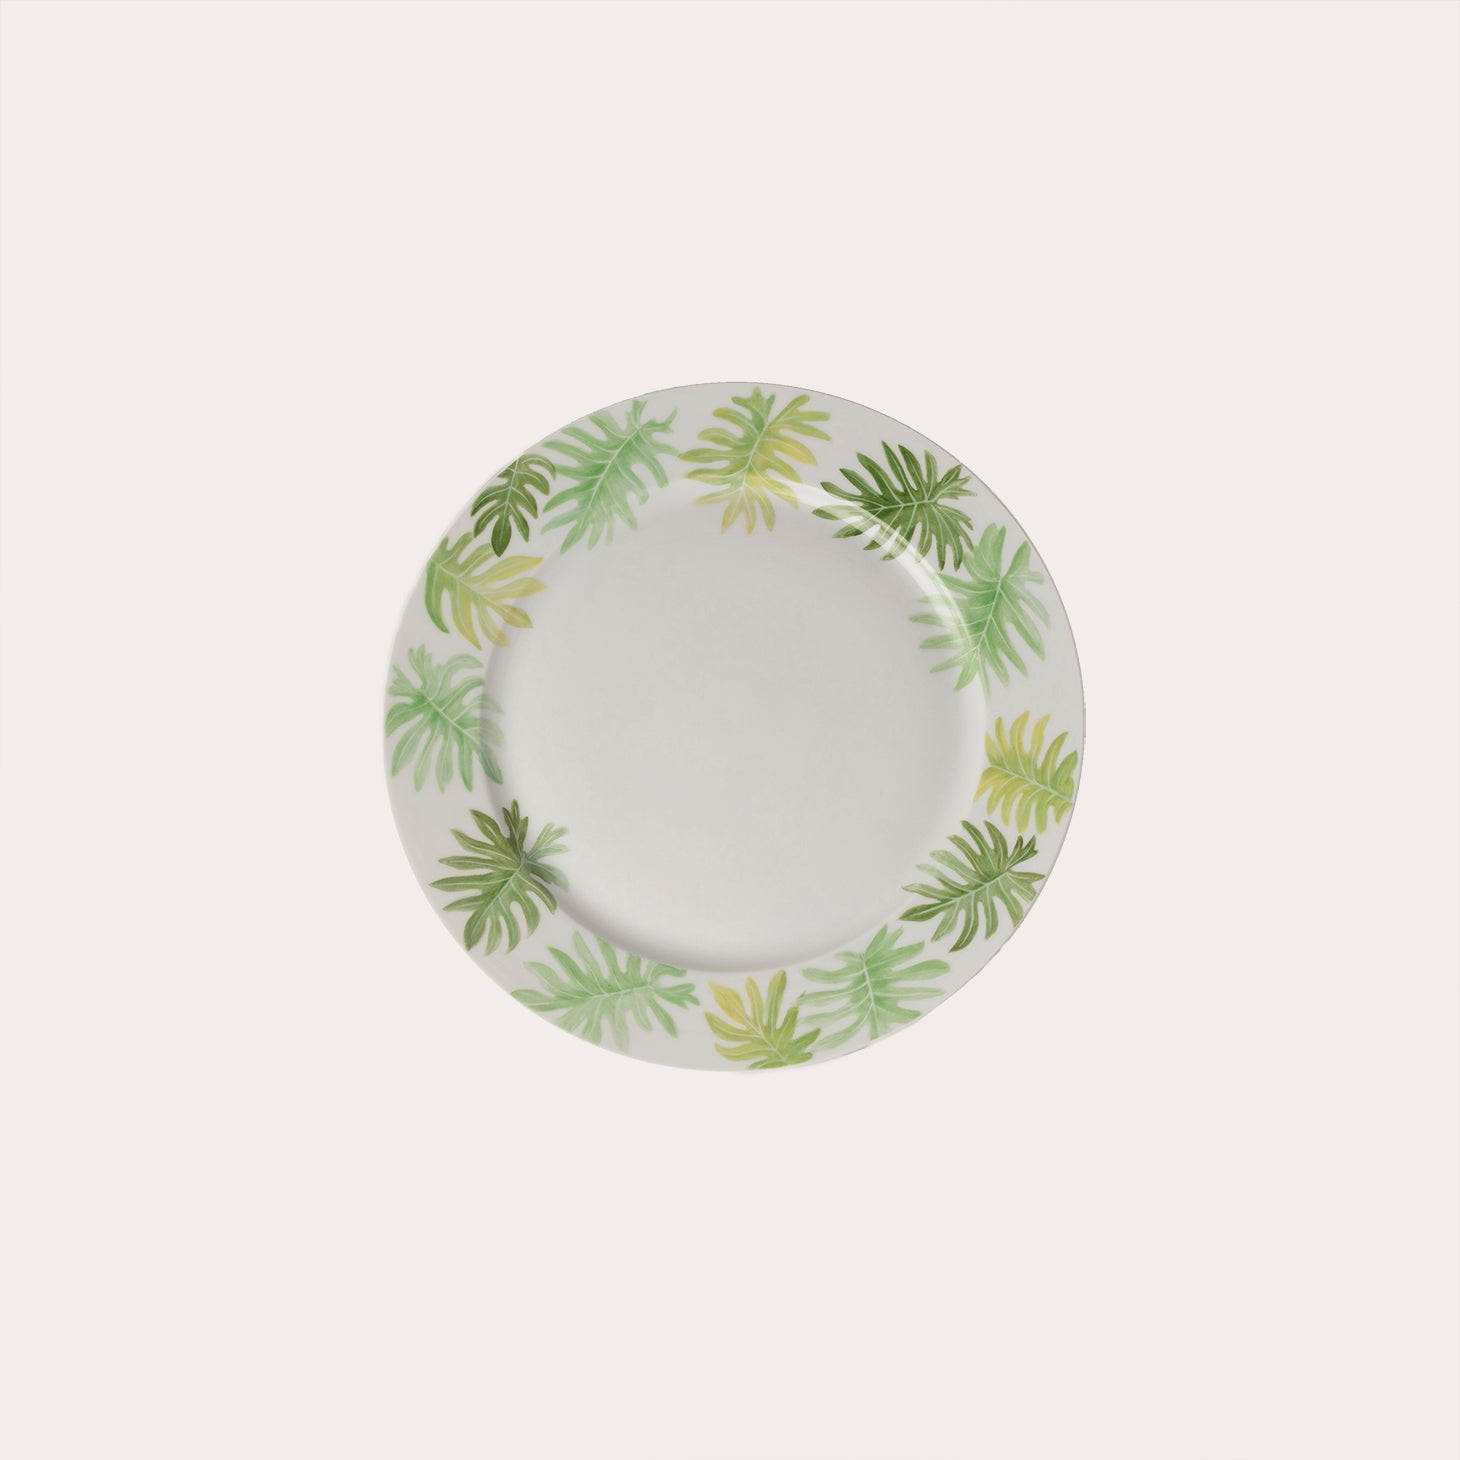 Palm Beach One Dinner Plate Accessories Nymphenburg Designer Furniture Sku: 542-100-10286